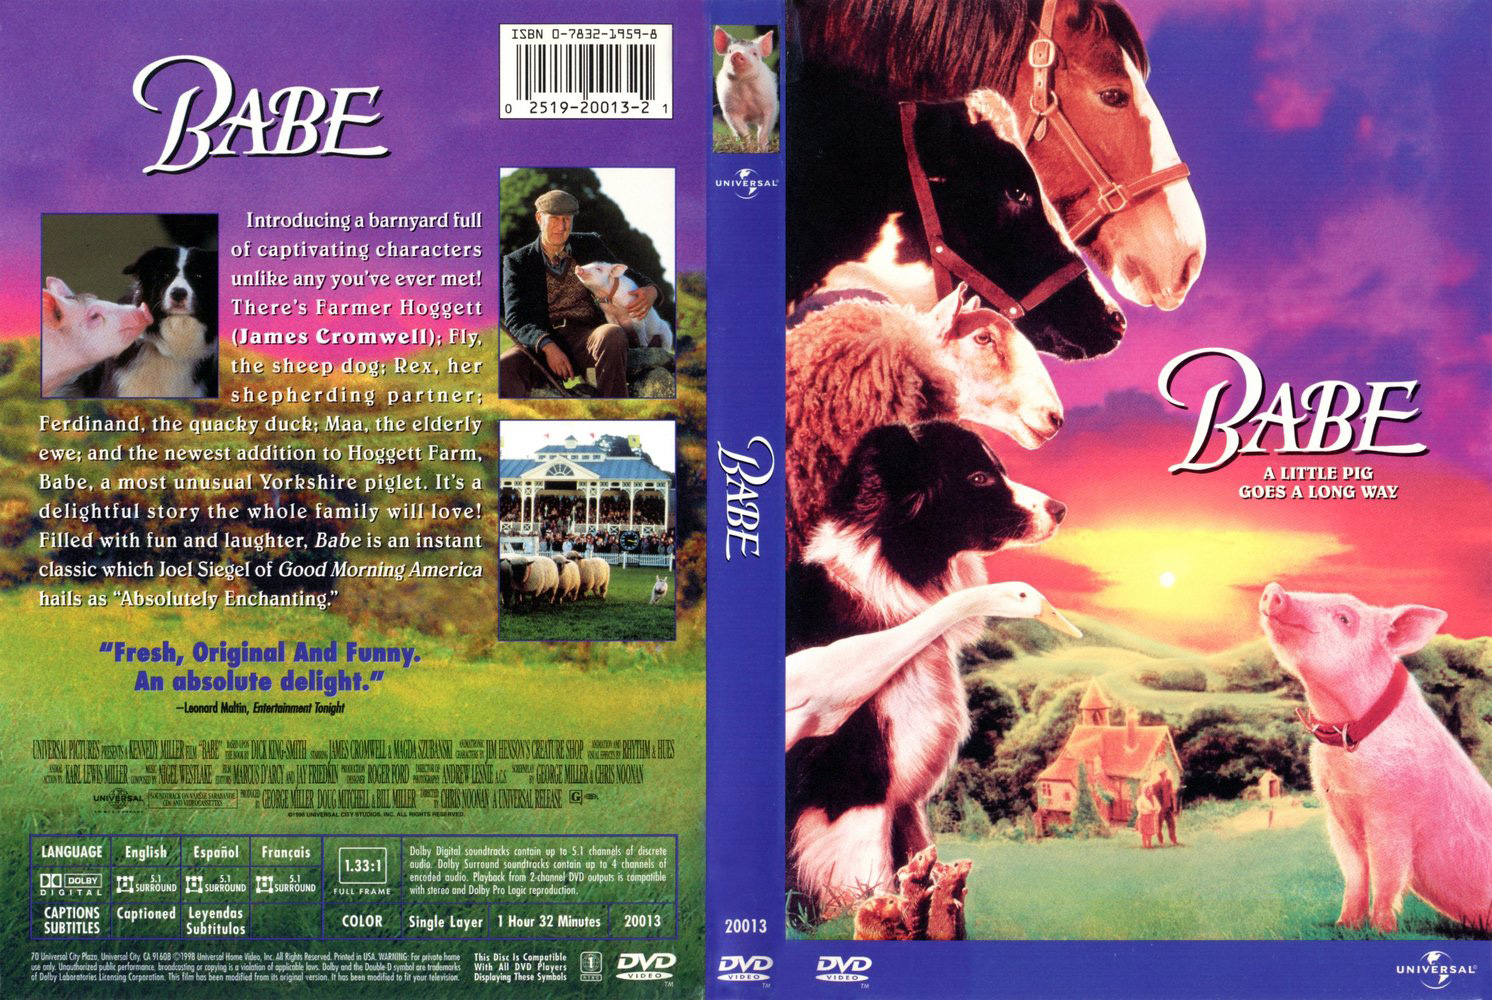 See BABE at Septemberfest Outdoor Movie 7 p.m. to 9 p.m.